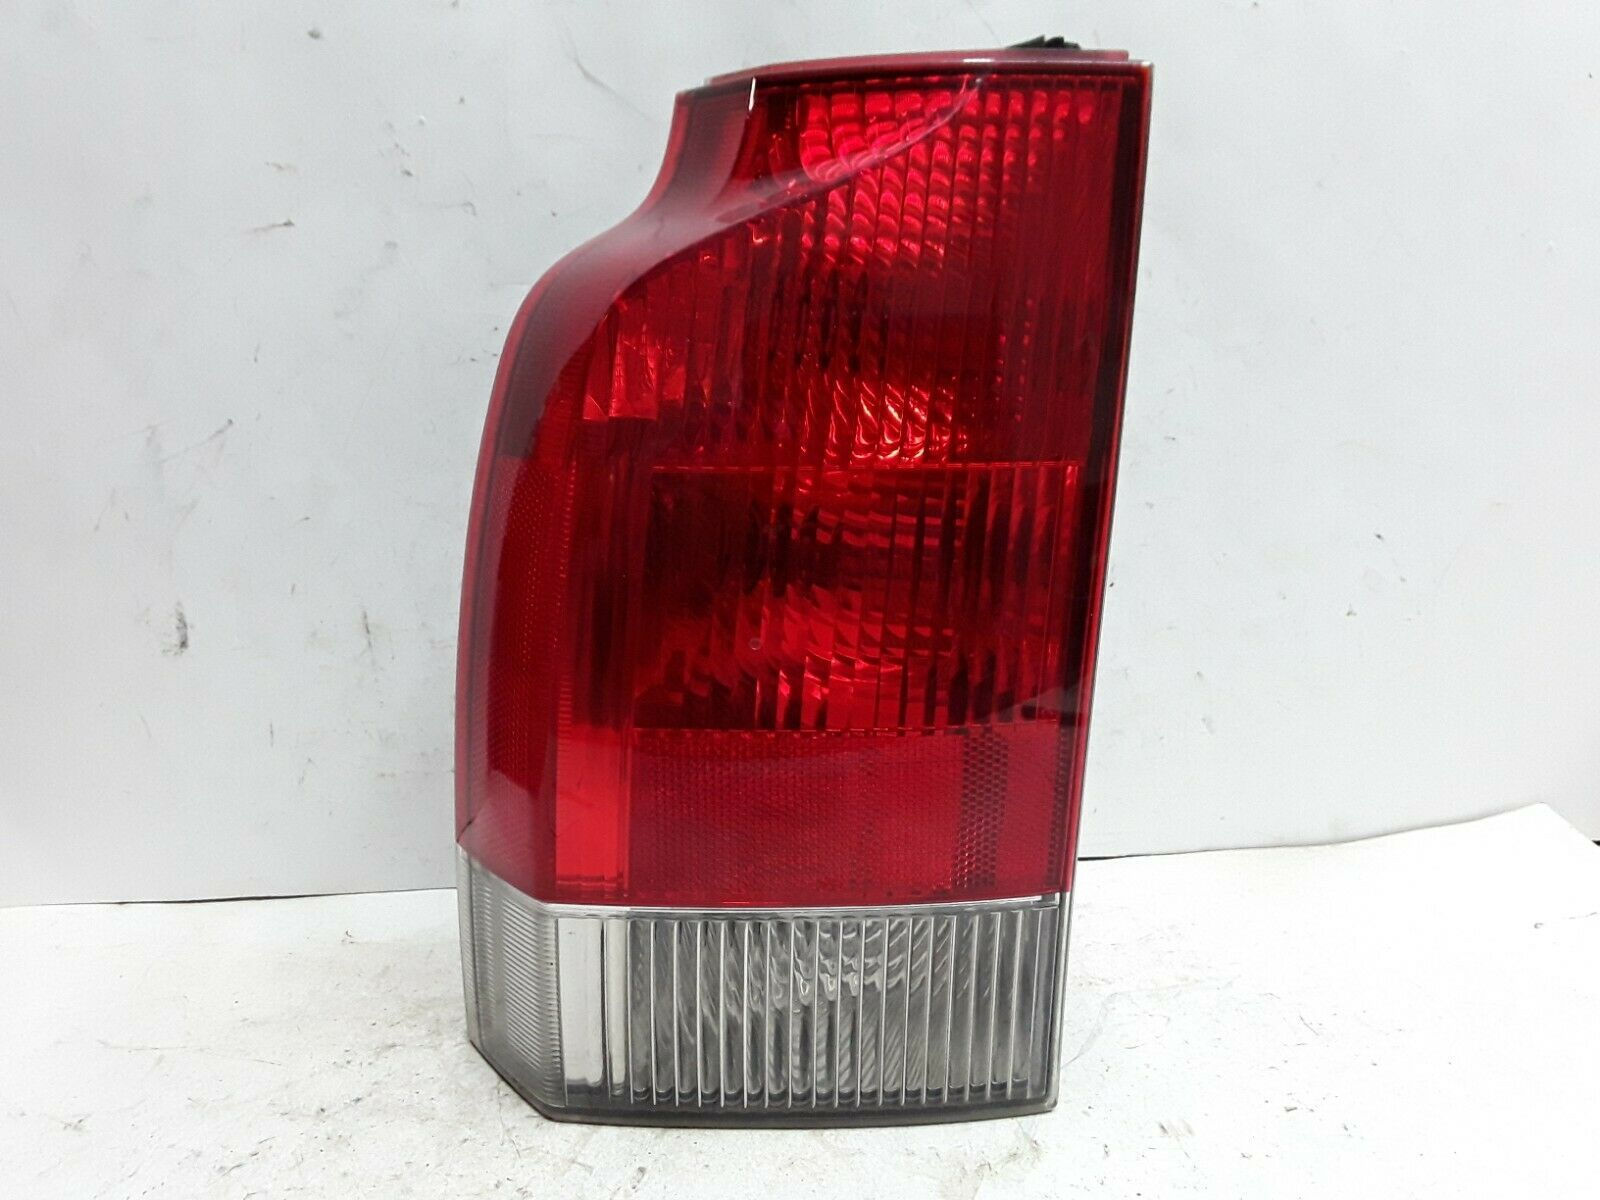 01 02 03 04 Volvo 70 series station wagon left lower tail light assembly XC70 - $89.09